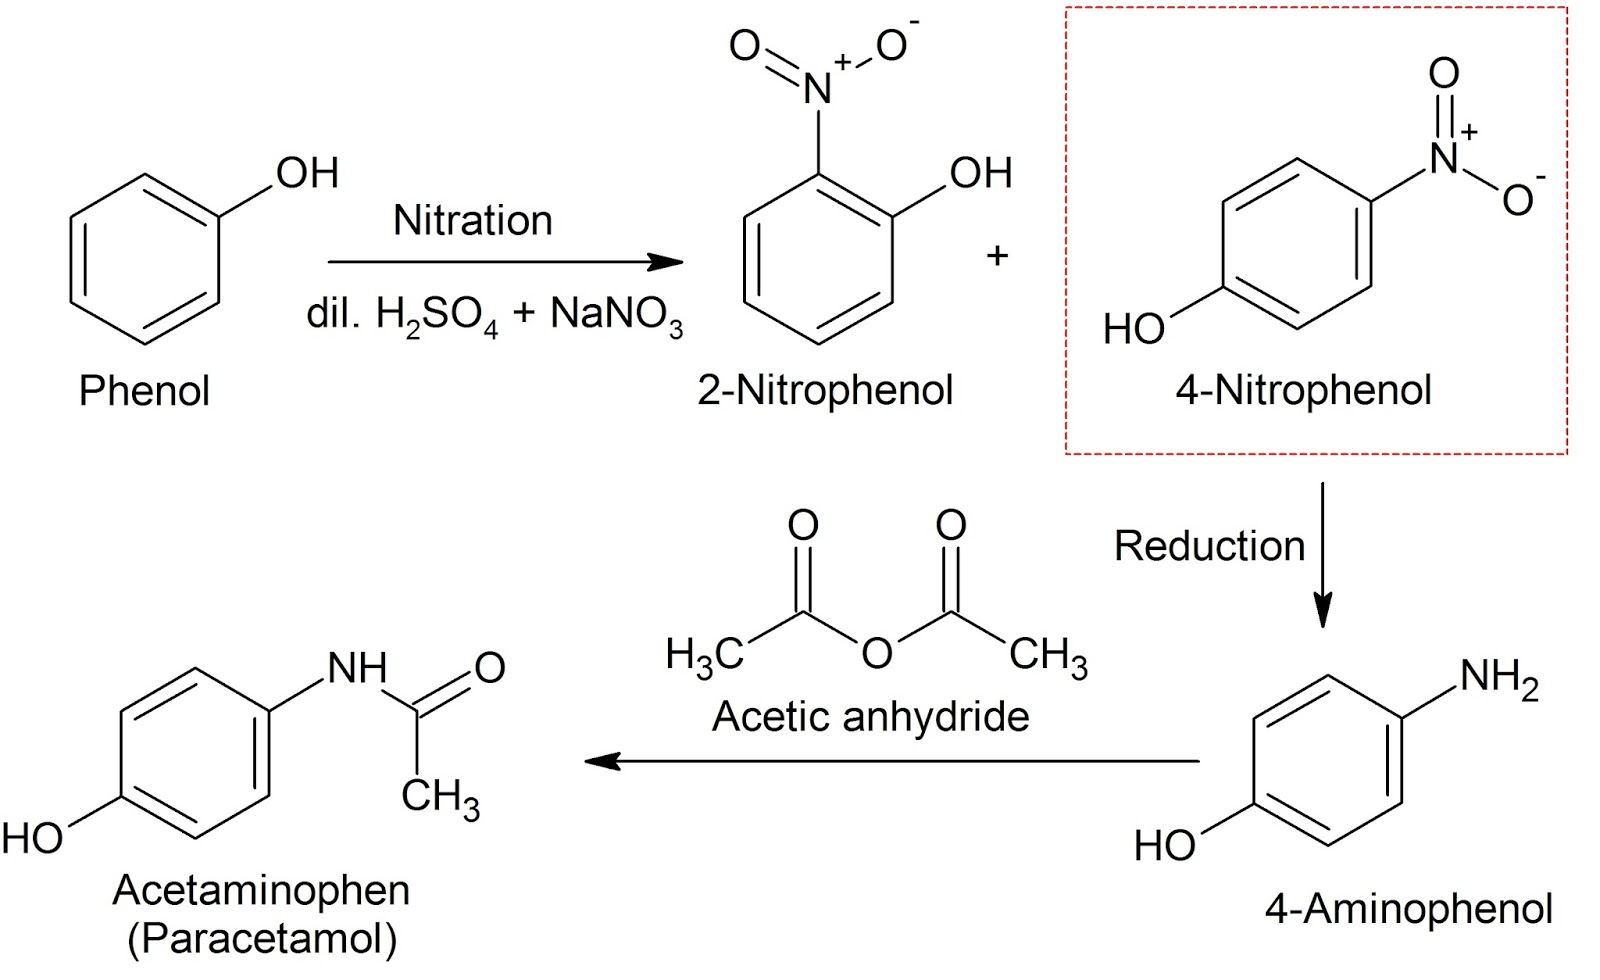 acetaminophen synthesis